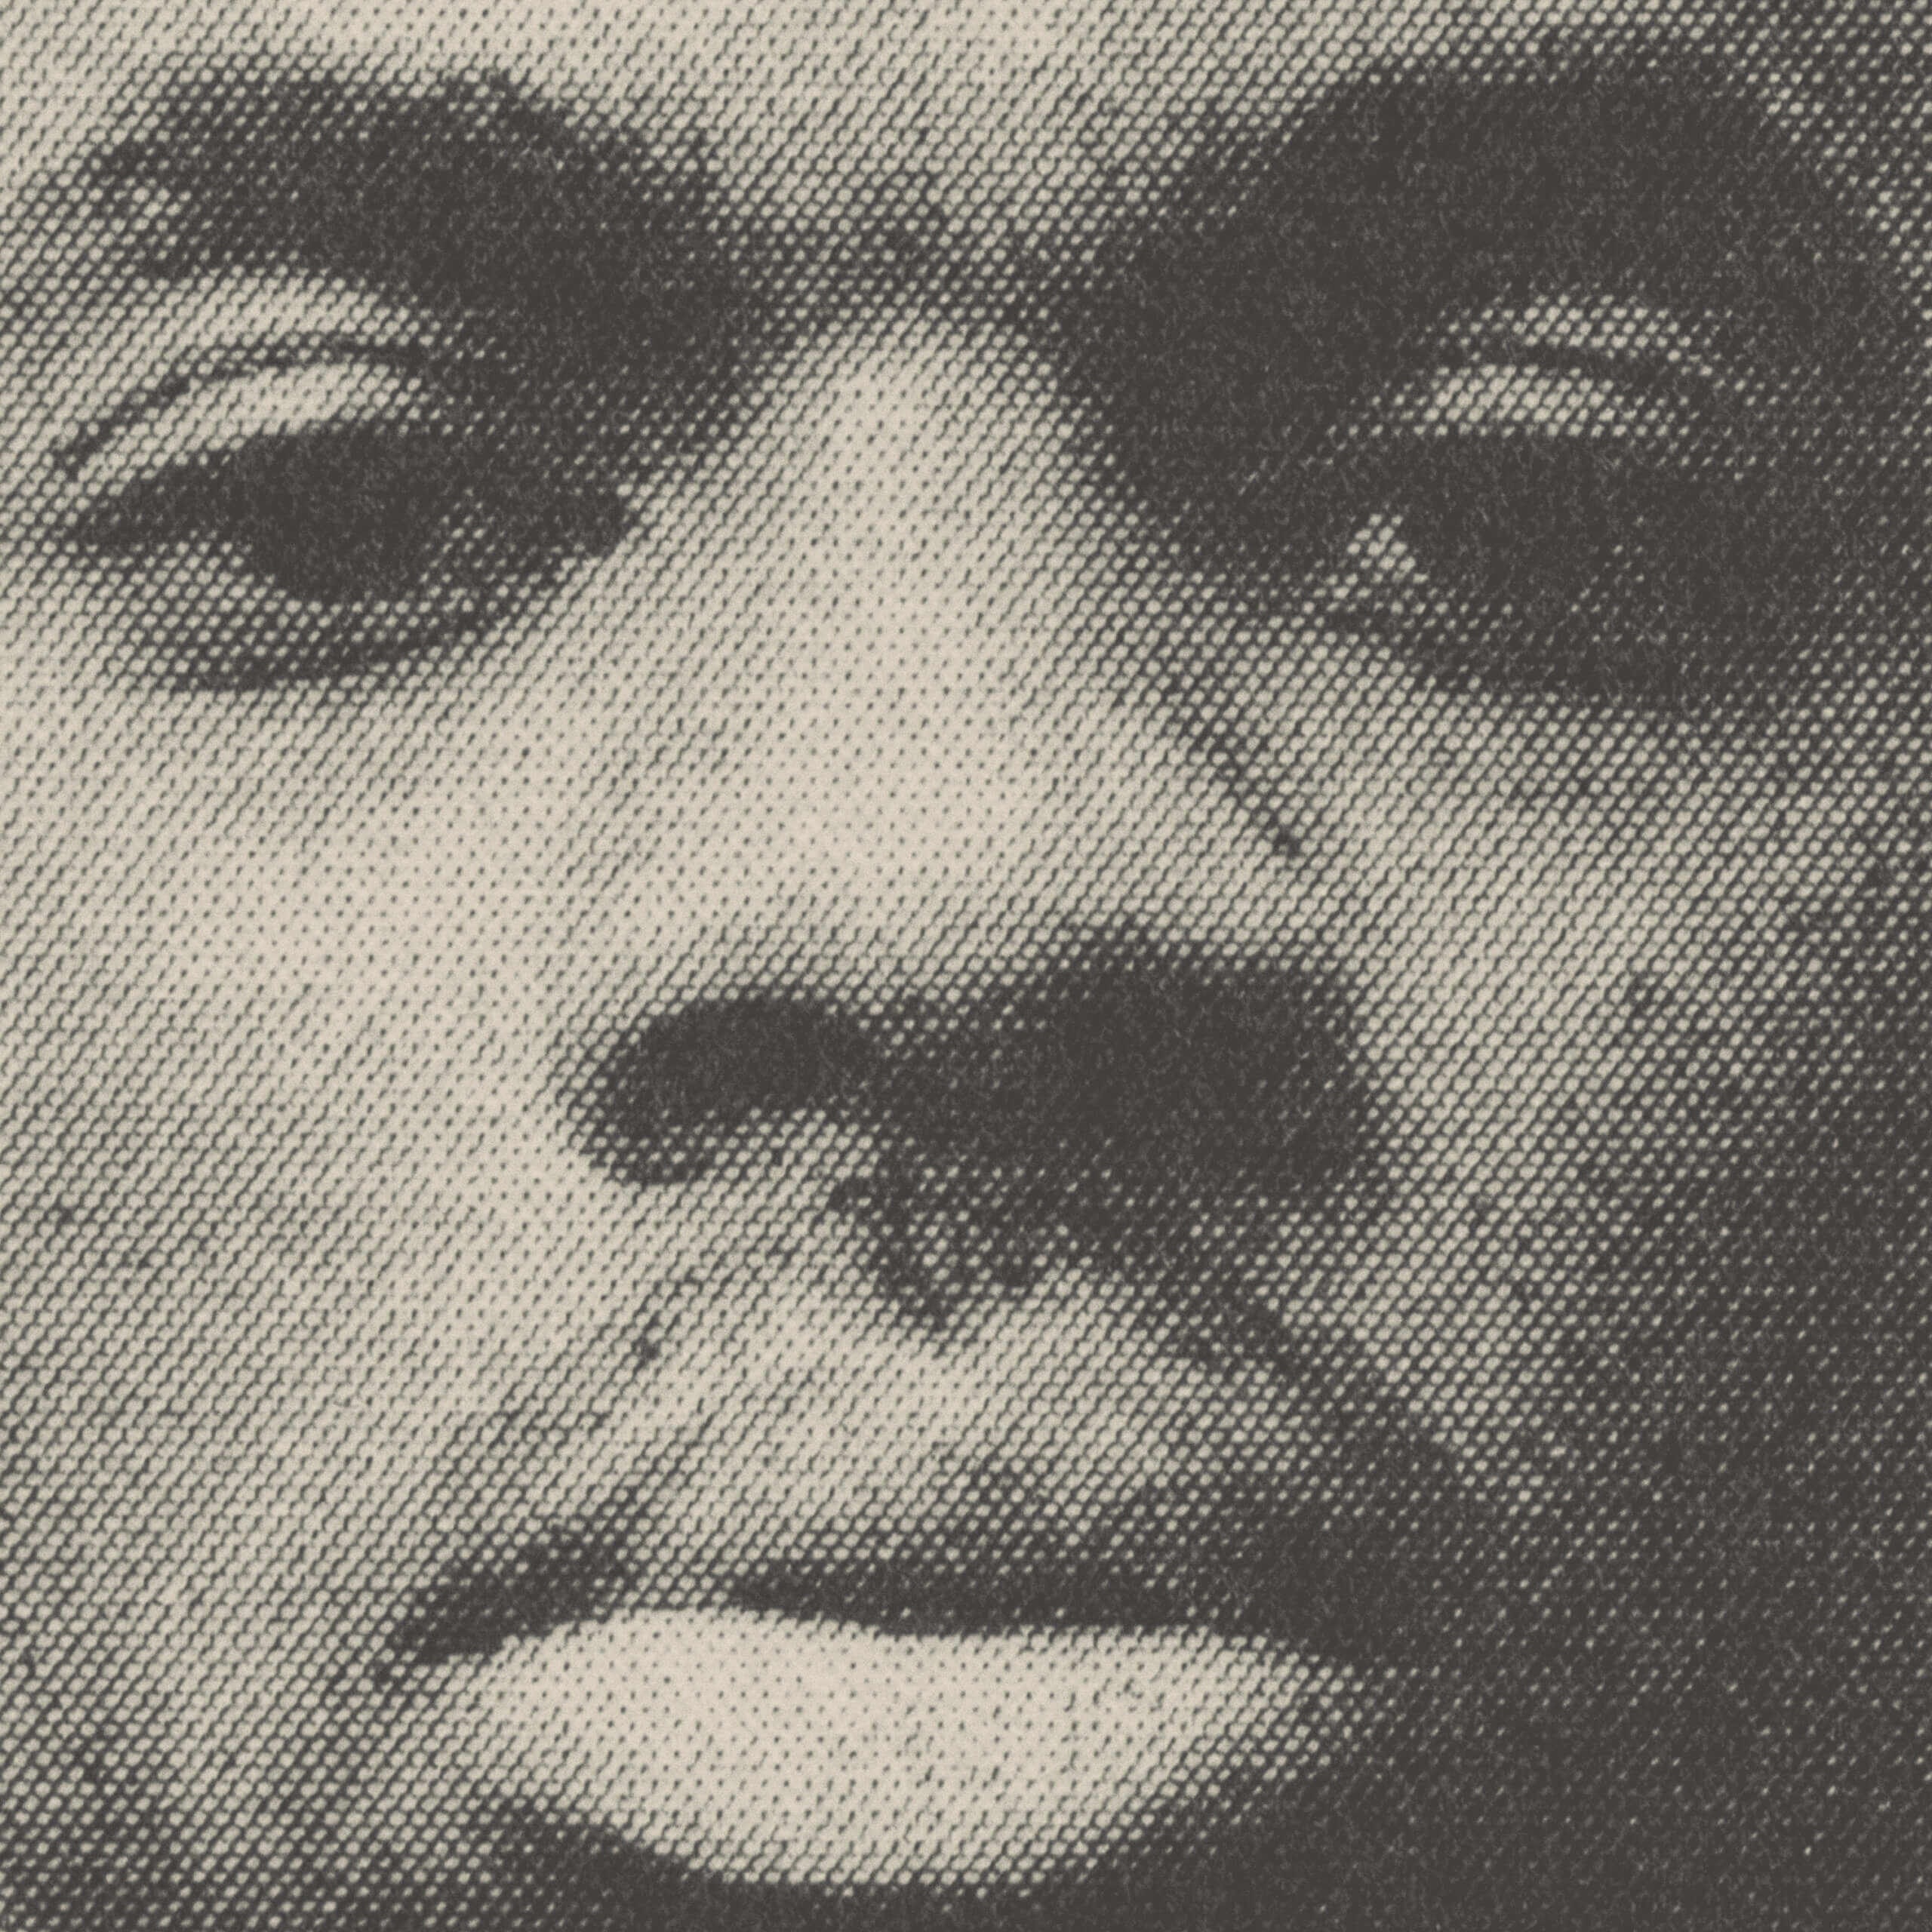 Vince Staples by Vince Staples album review by Brody Kenny for Northern Transmissions